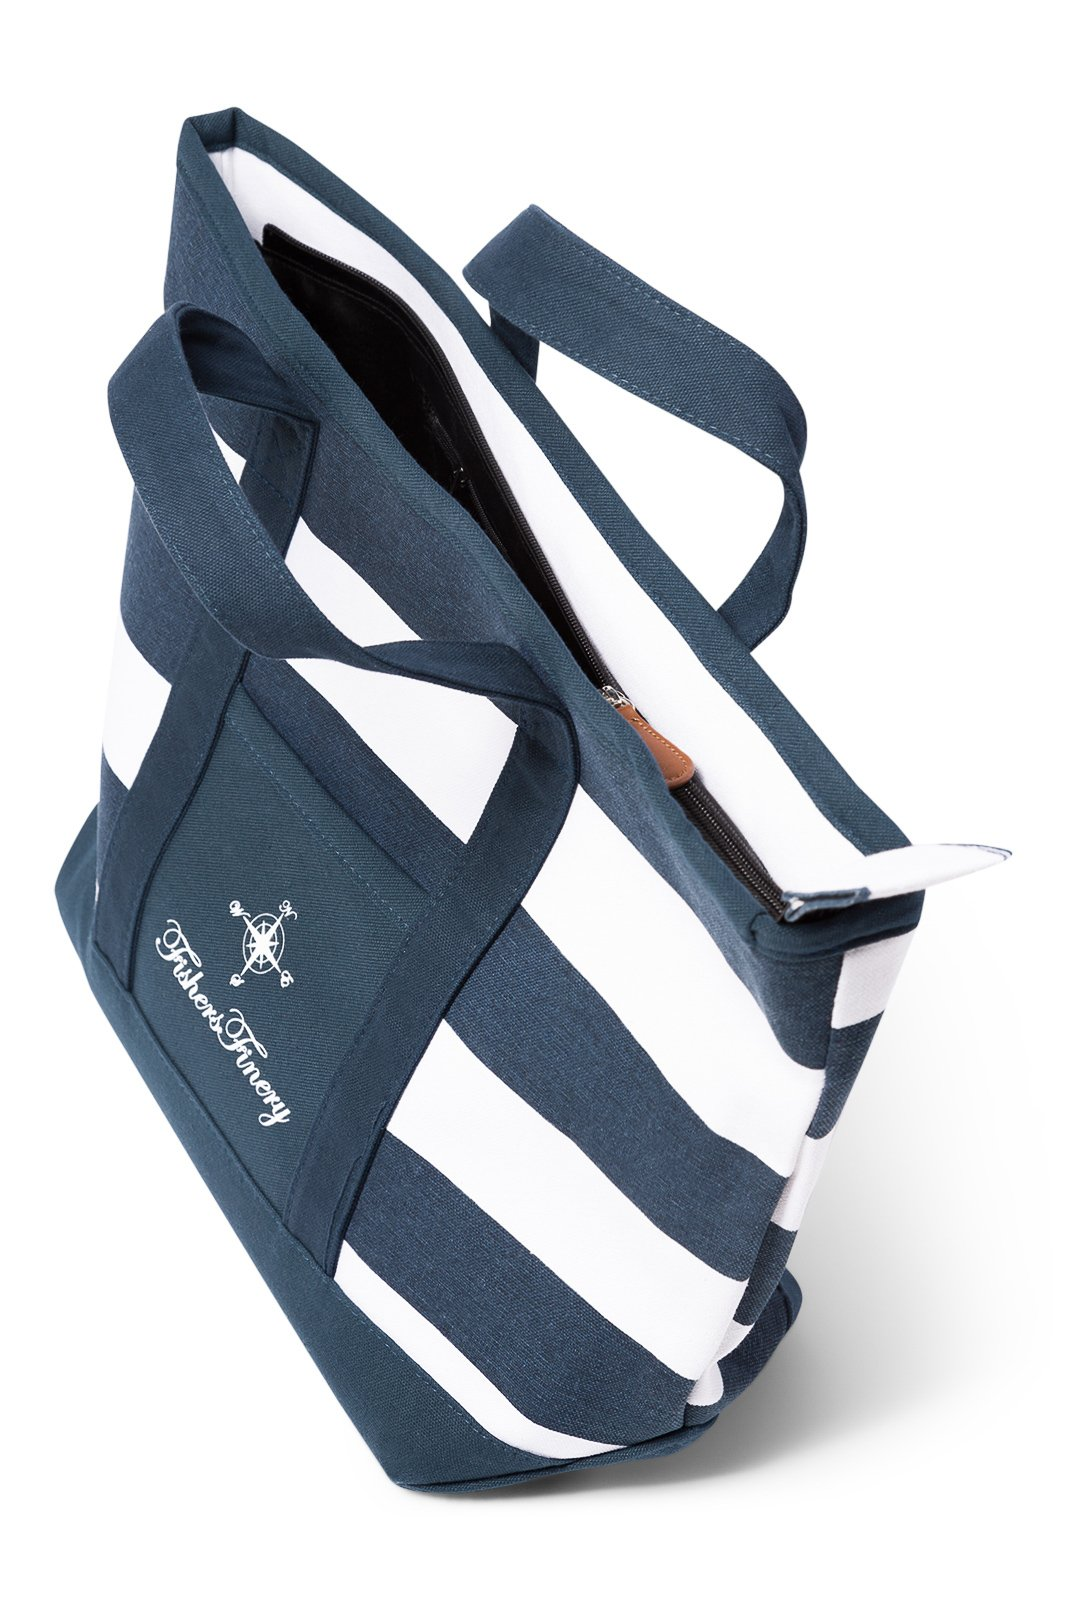 Fishers Finery Canvas Tote with Zipper and Lining with interior Pockets; Multi Sizes and Colors (Navy, S) by Fishers Finery (Image #2)